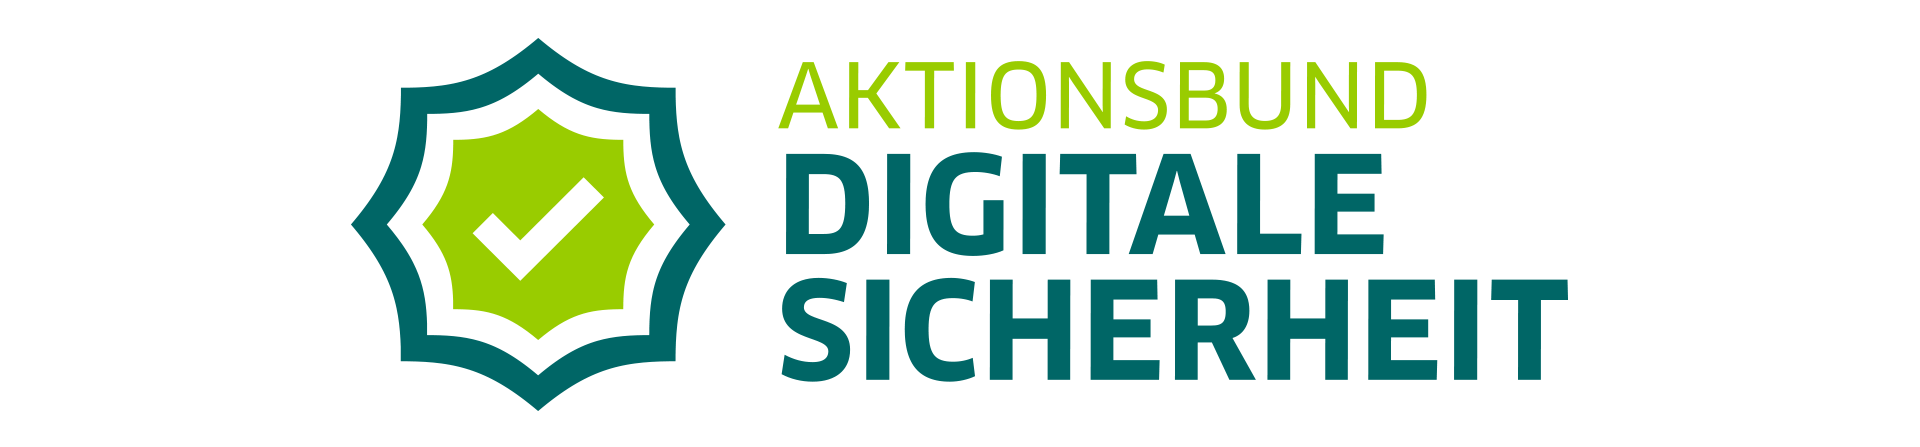 DsiN Aktionsbund Digitale Sicherheit Logo